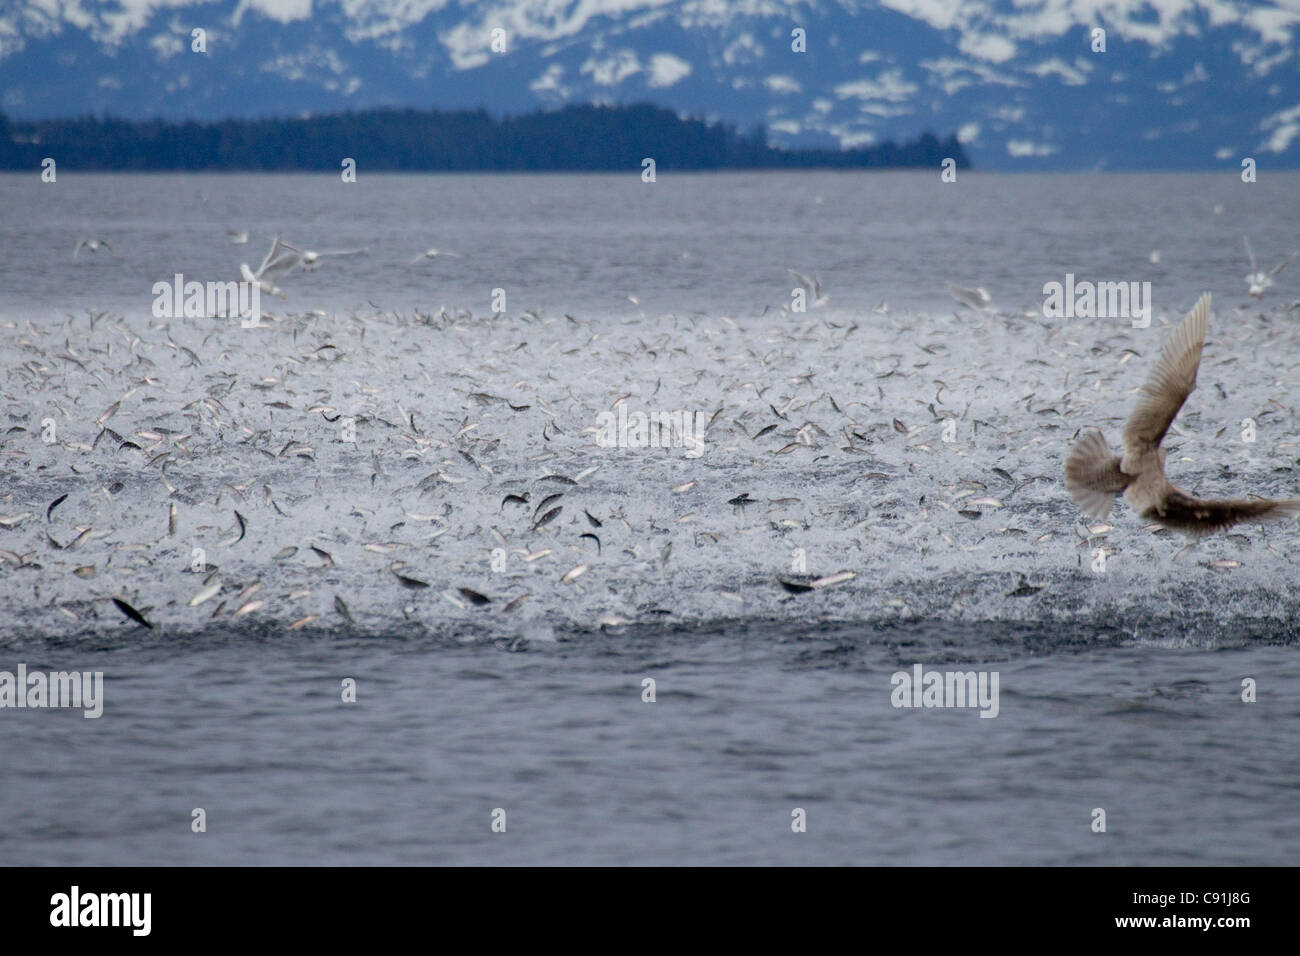 Large school of herring erupting from surface pursued by lunge-feeding humpback whales, Prince William Sound, Alaska - Stock Image